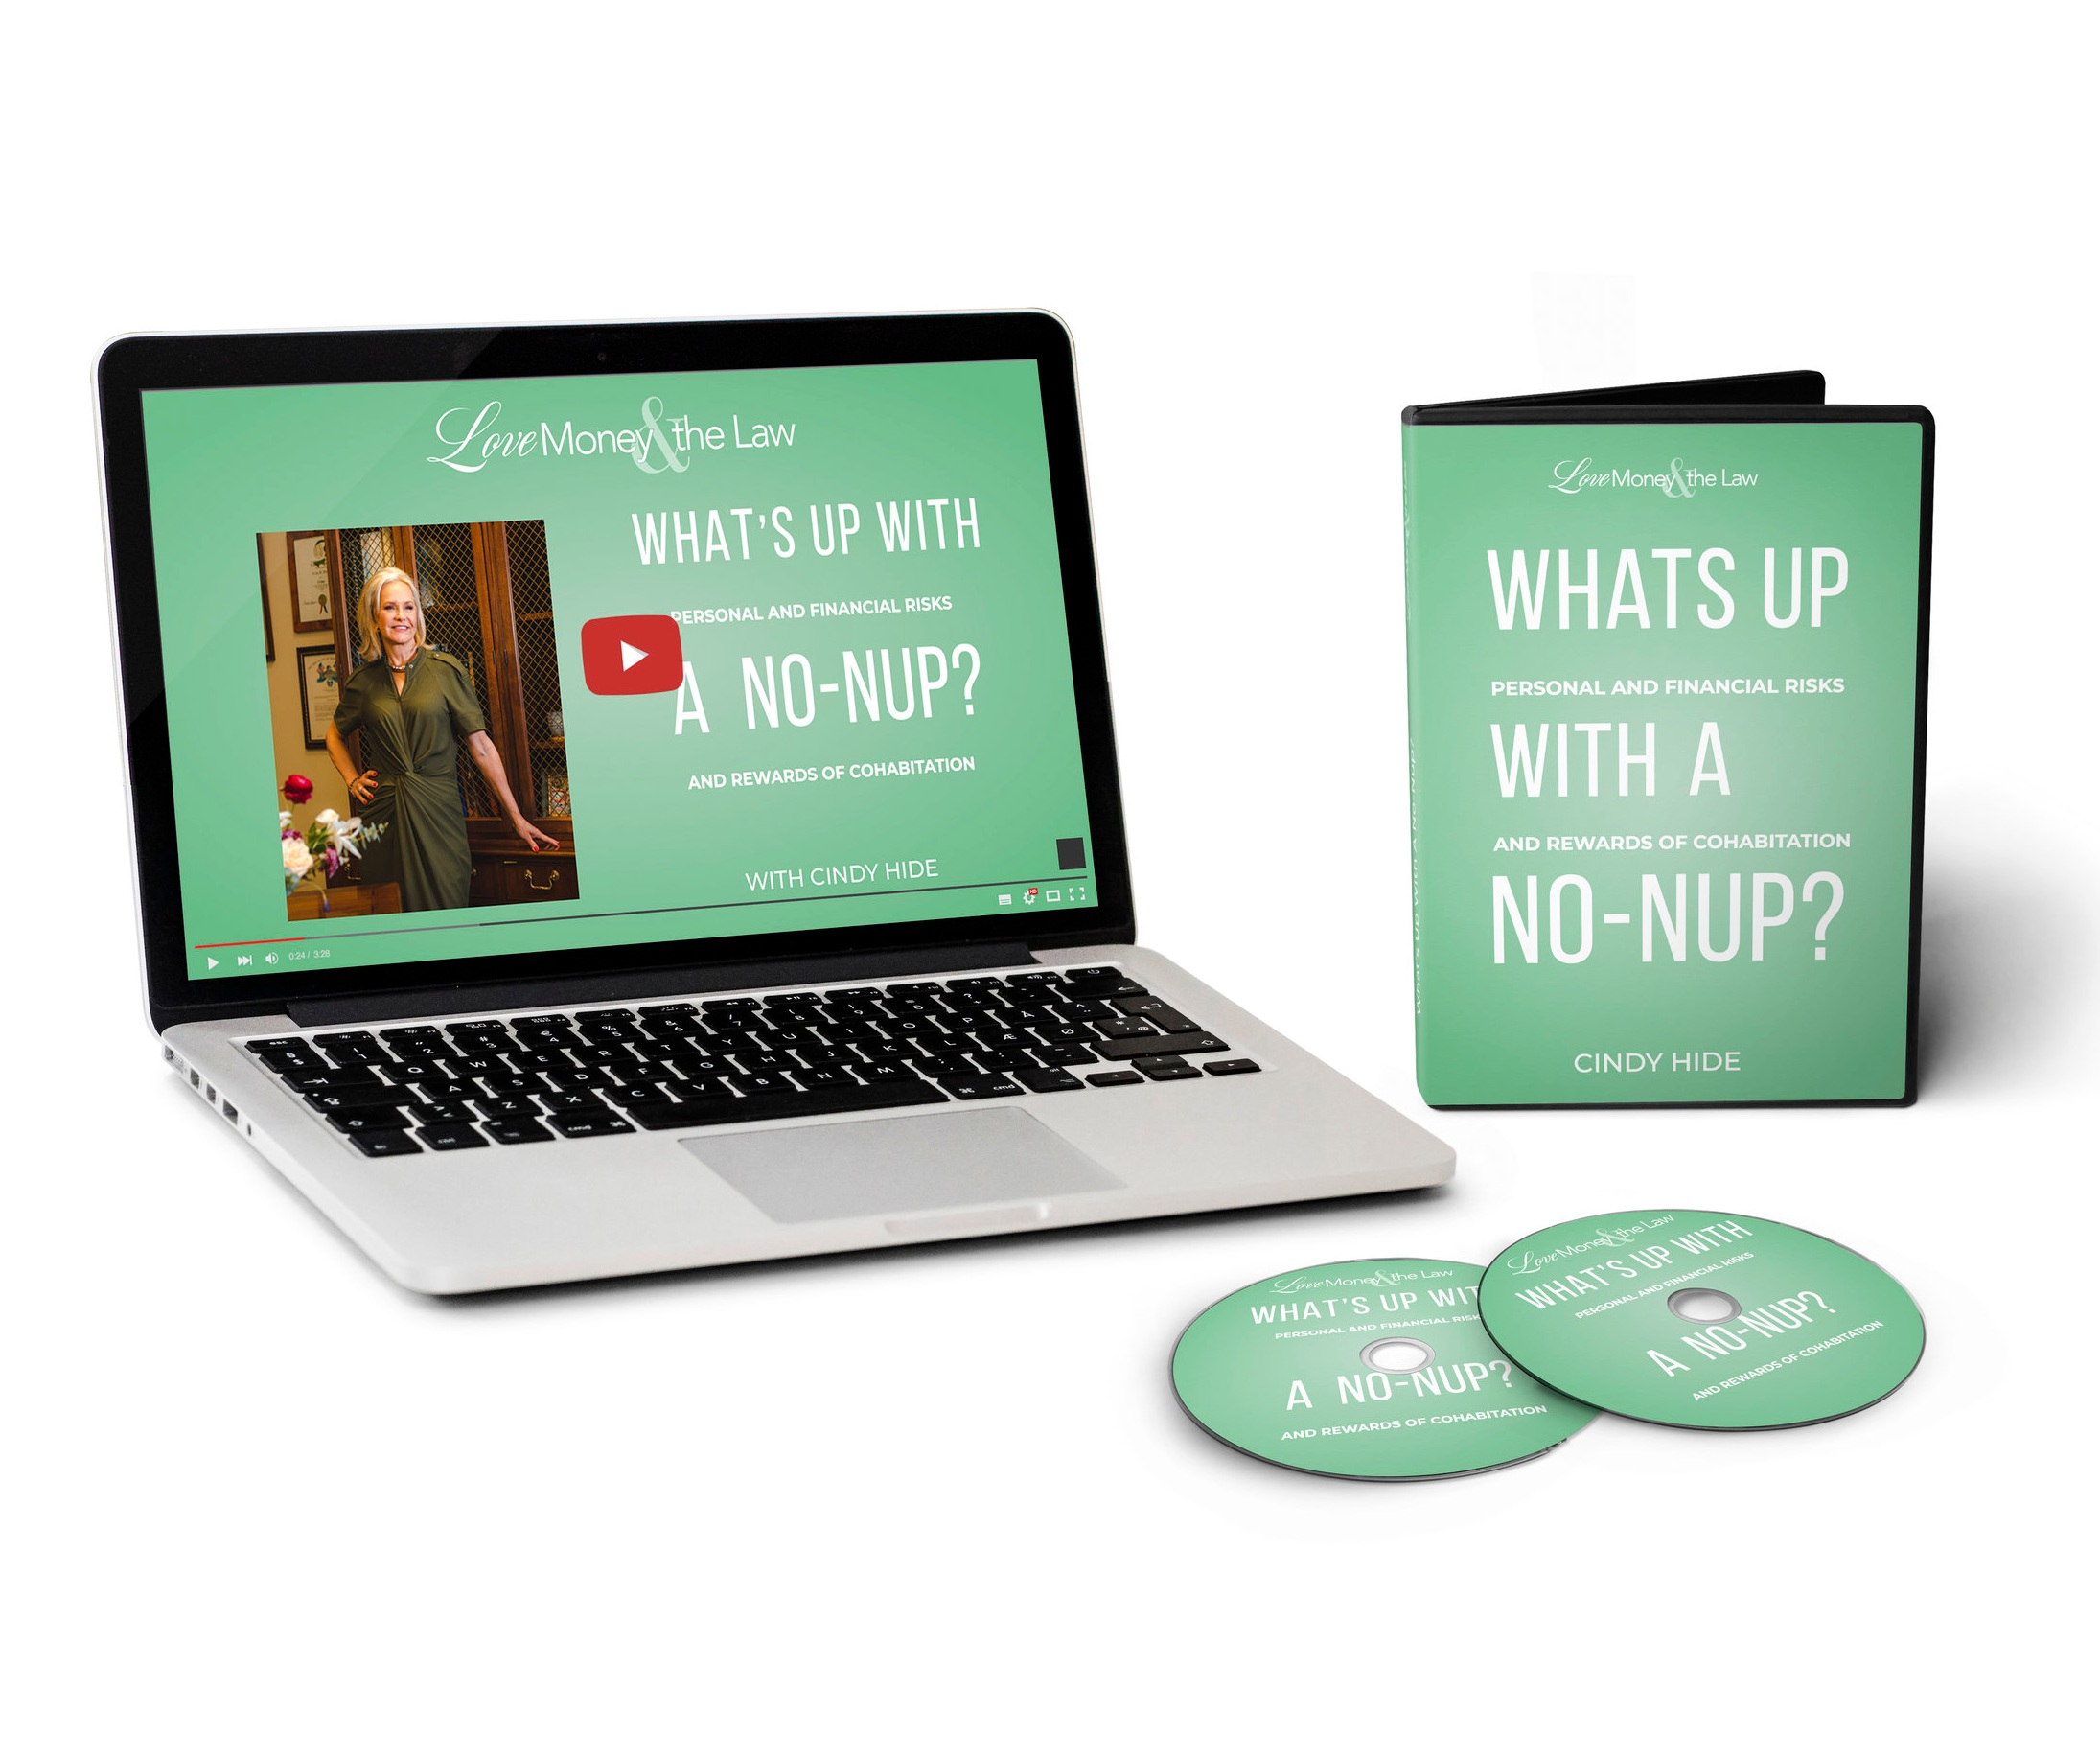 Video Series for What's Up With A No-Nup: Personal and Financial Risks and Rewards of Cohabitation.